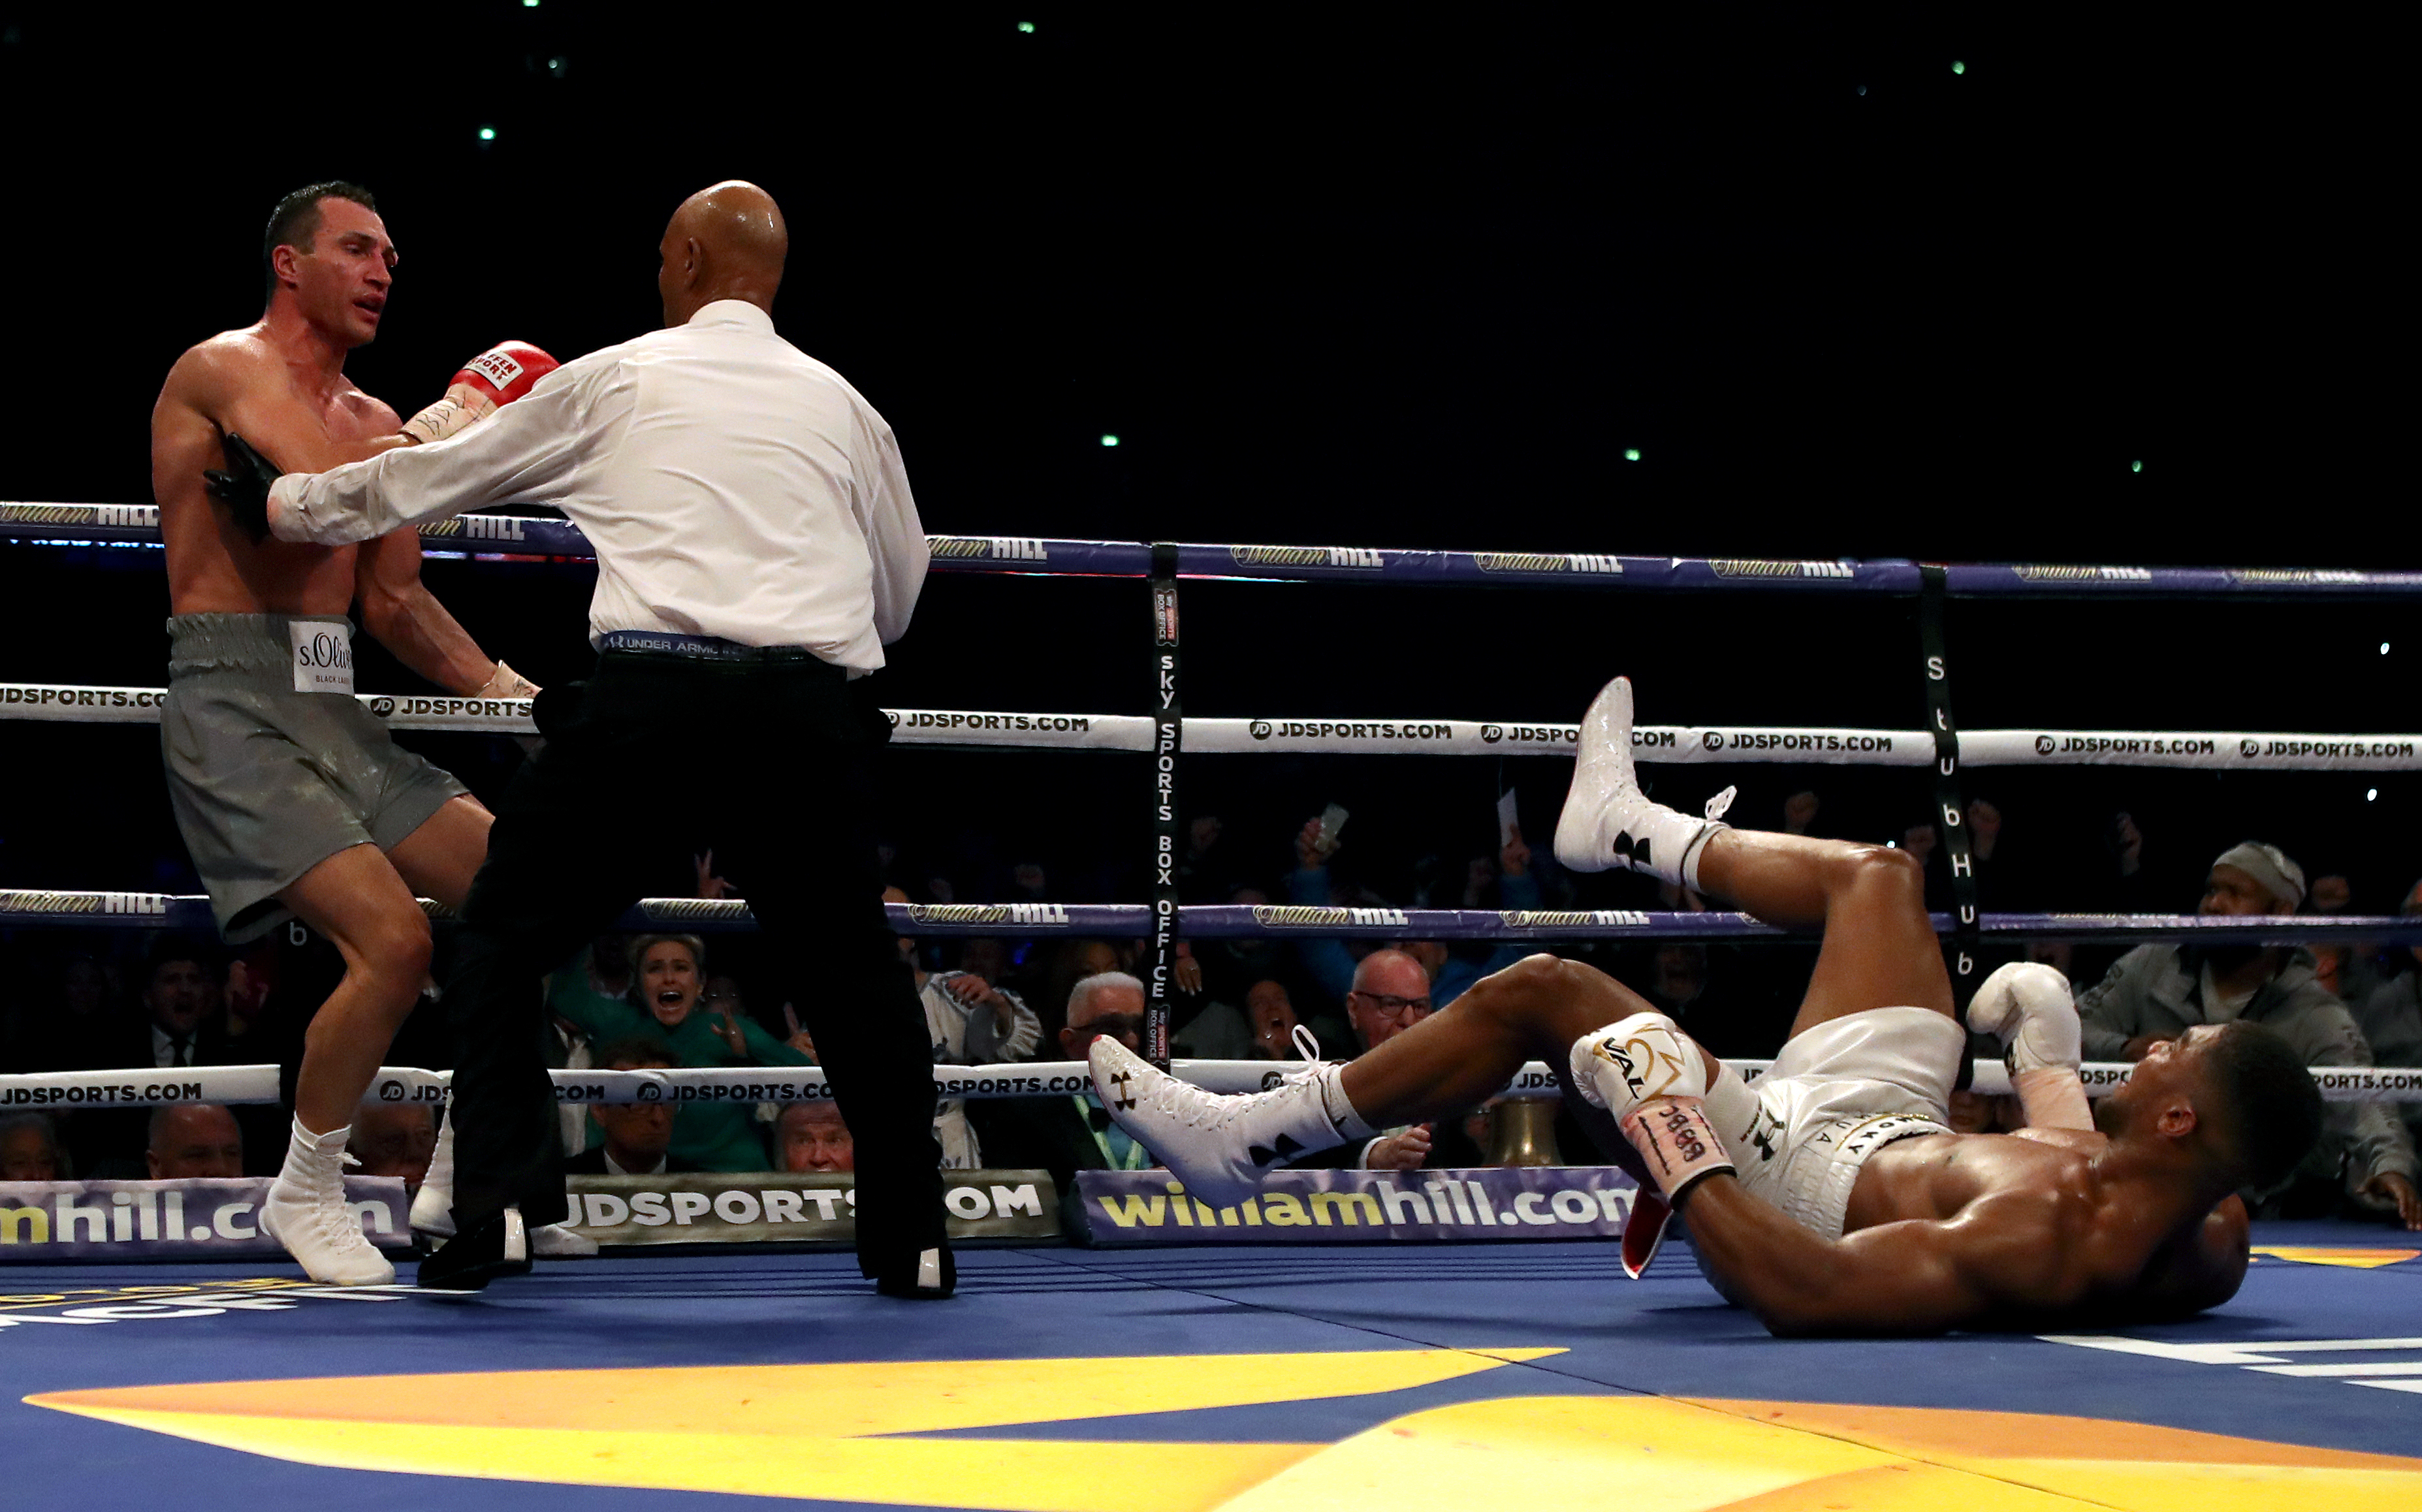 Wladimir Klitschko knocks Anthony Joshua down